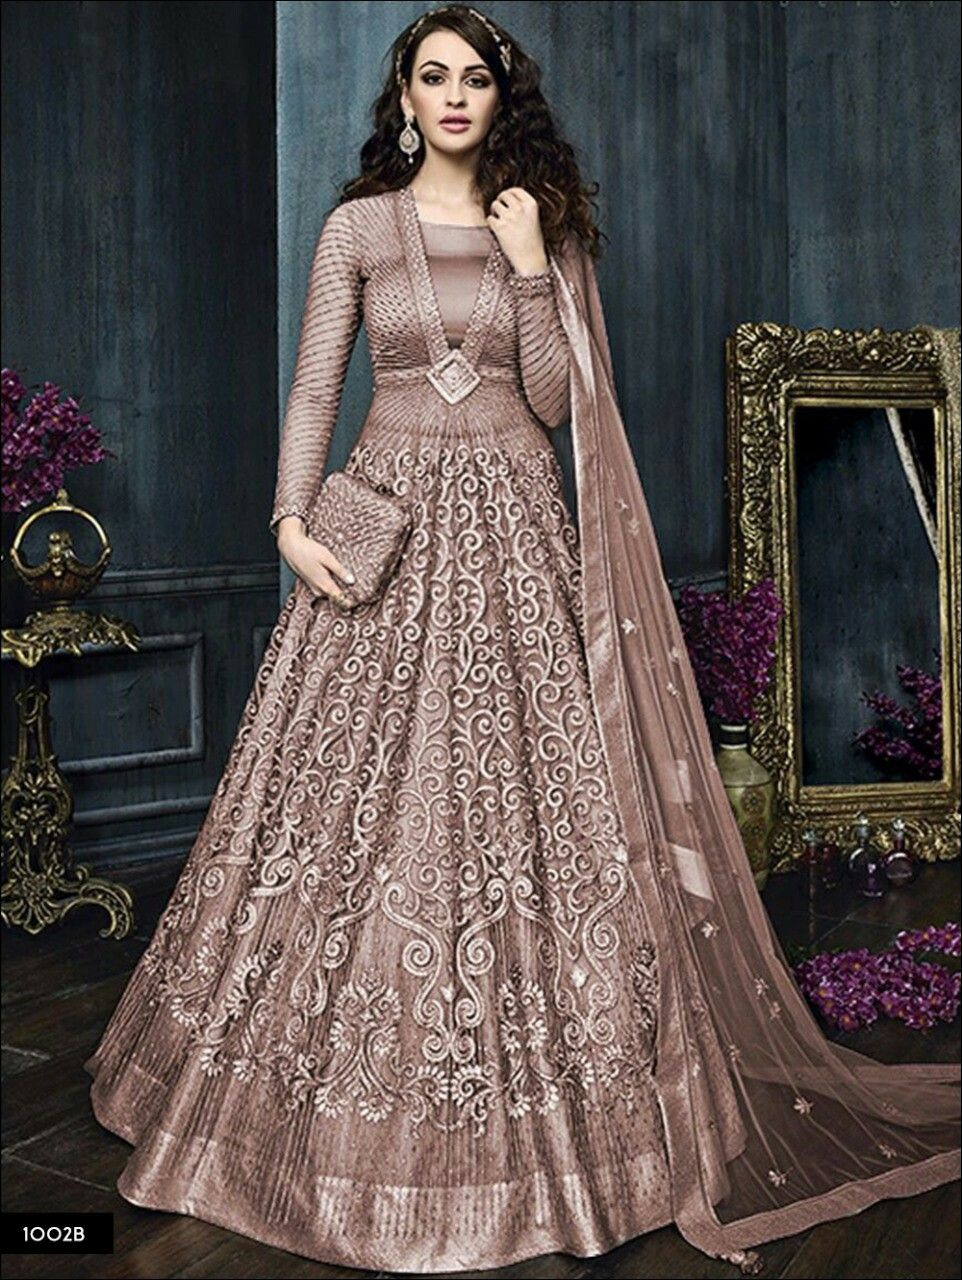 db19a88d6 A pretty mocha evening gown. | Dresses in 2019 | Long anarkali gown ...